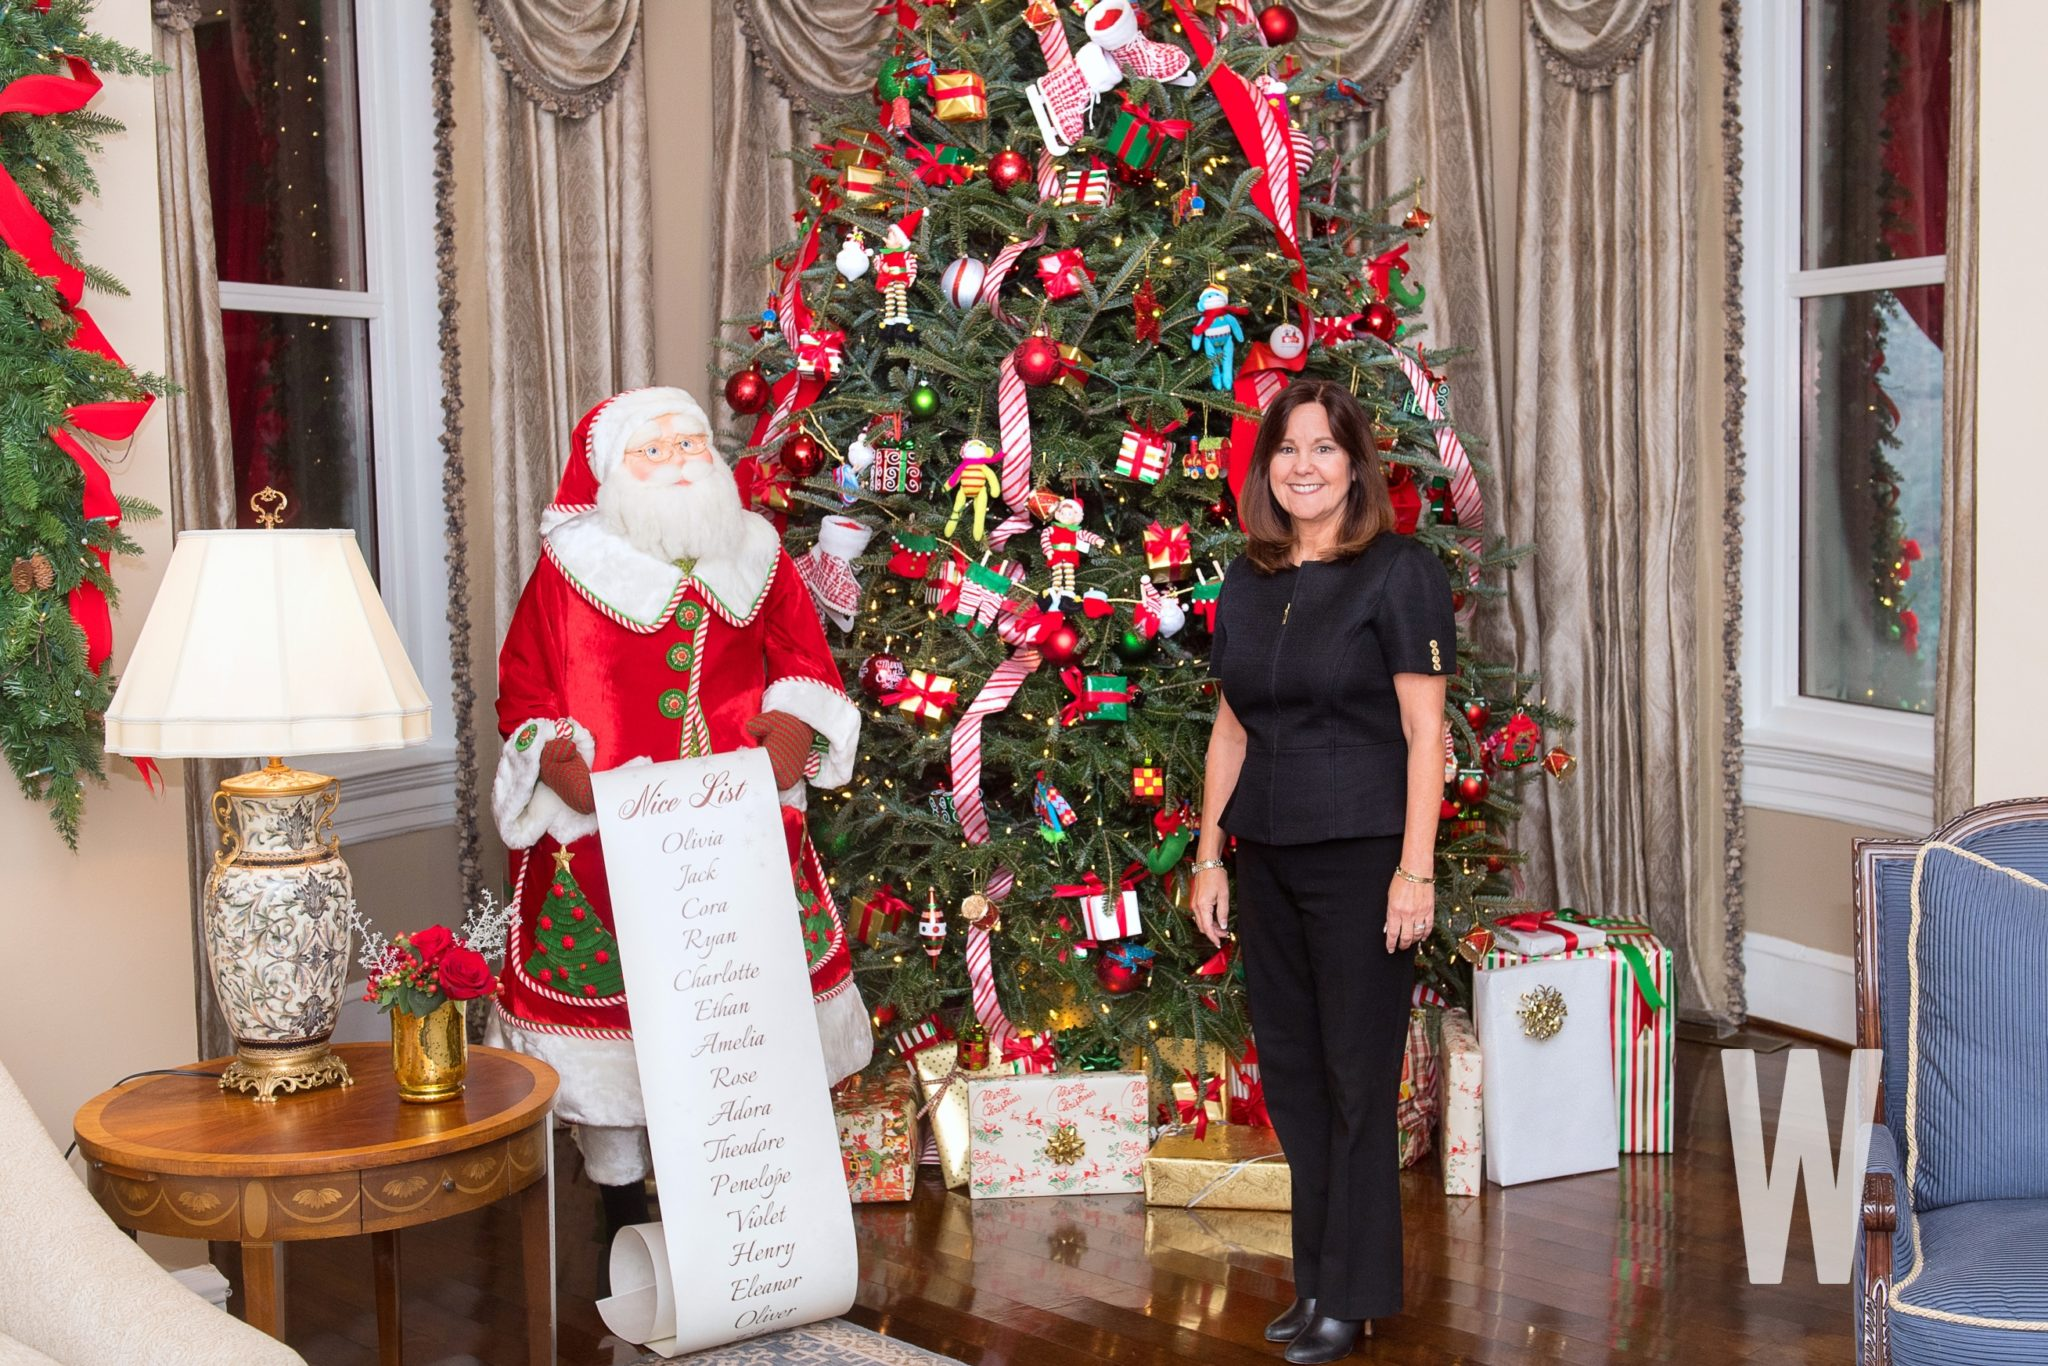 PHOTOS: The 2018 Vice President's Residence Christmas Decorations